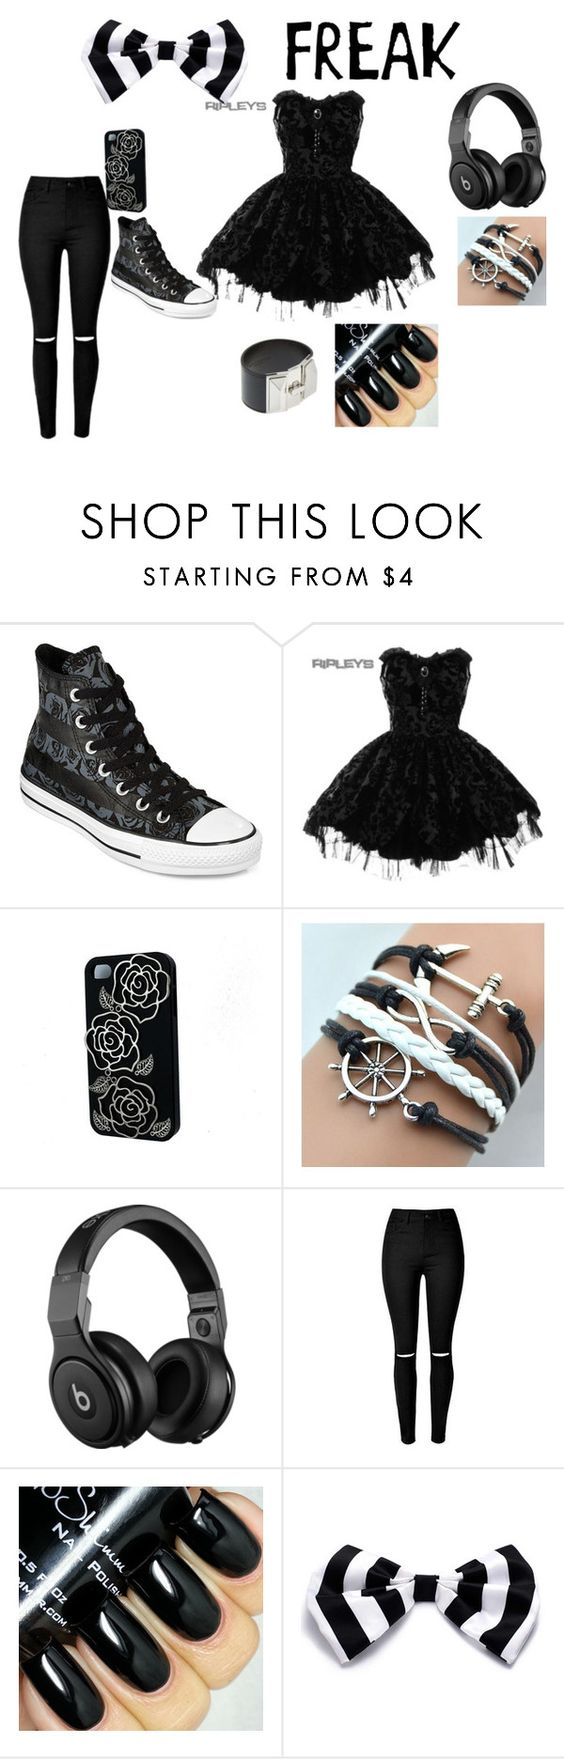 me8 riaha by stargazzer24 on Polyvore featuring Hell Bunny, Converse, Yves Saint Laurent, Beats by Dr. Dre, women's clothing, women's fashion, women, female, woman and misses